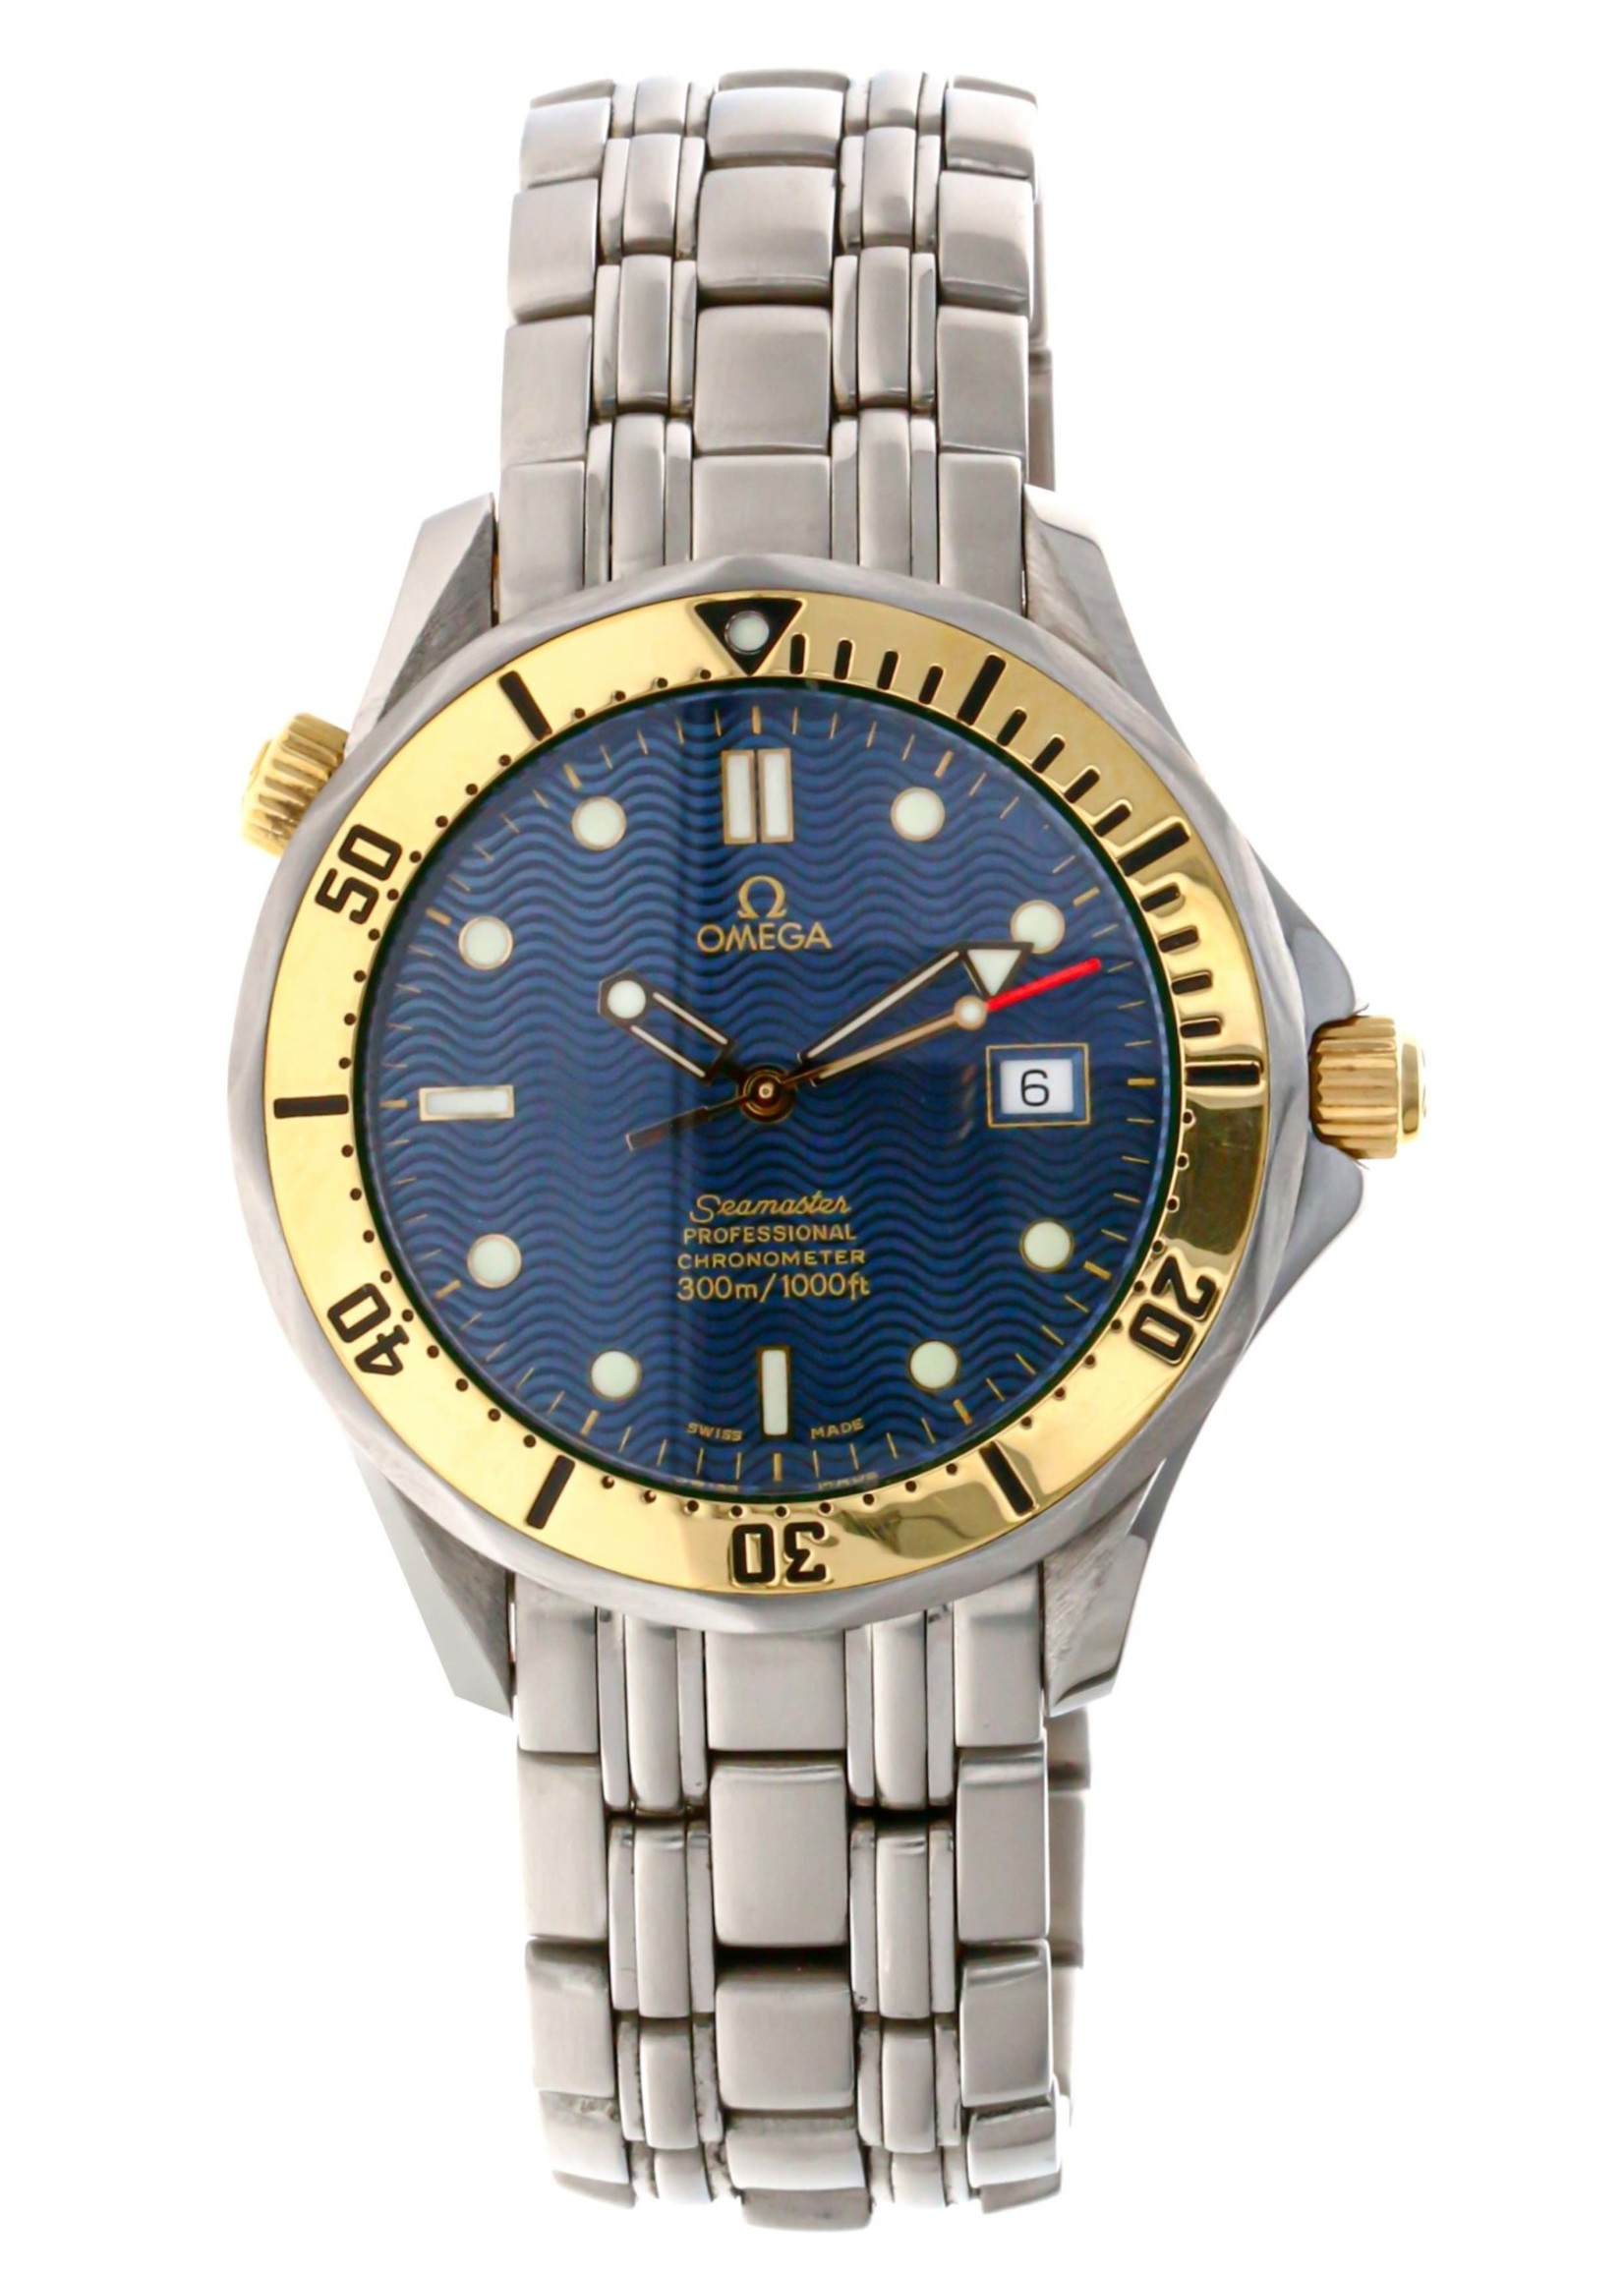 Omega Omega Seamaster 300m Two tone Head